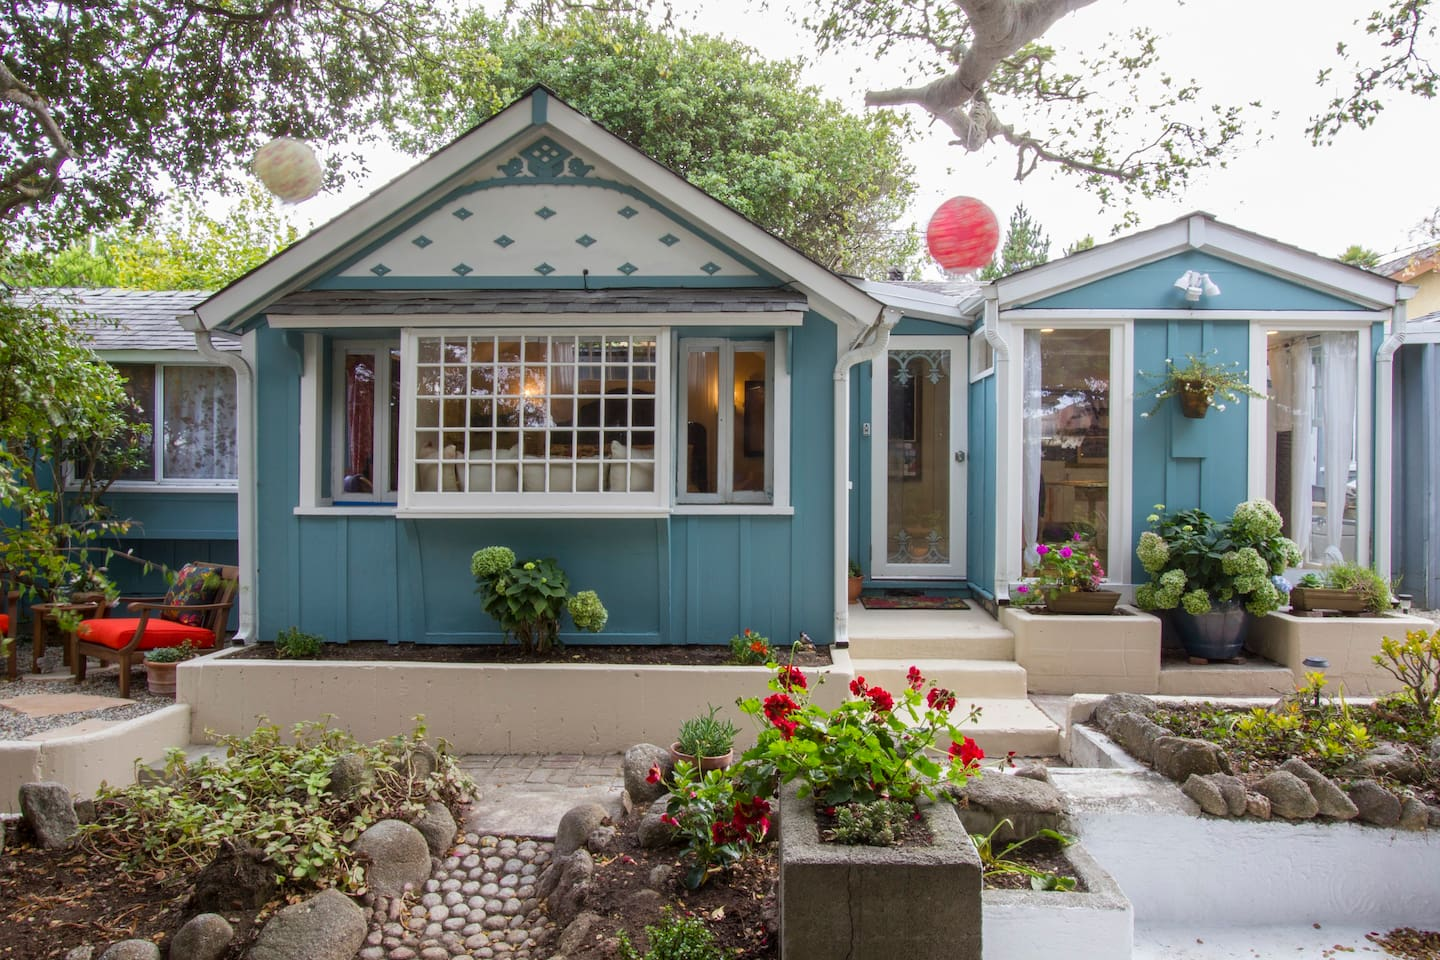 Plan A Stay At John Steinbeck's Writer Studio That's Now A Cozy Cottage Hideaway In Northern California